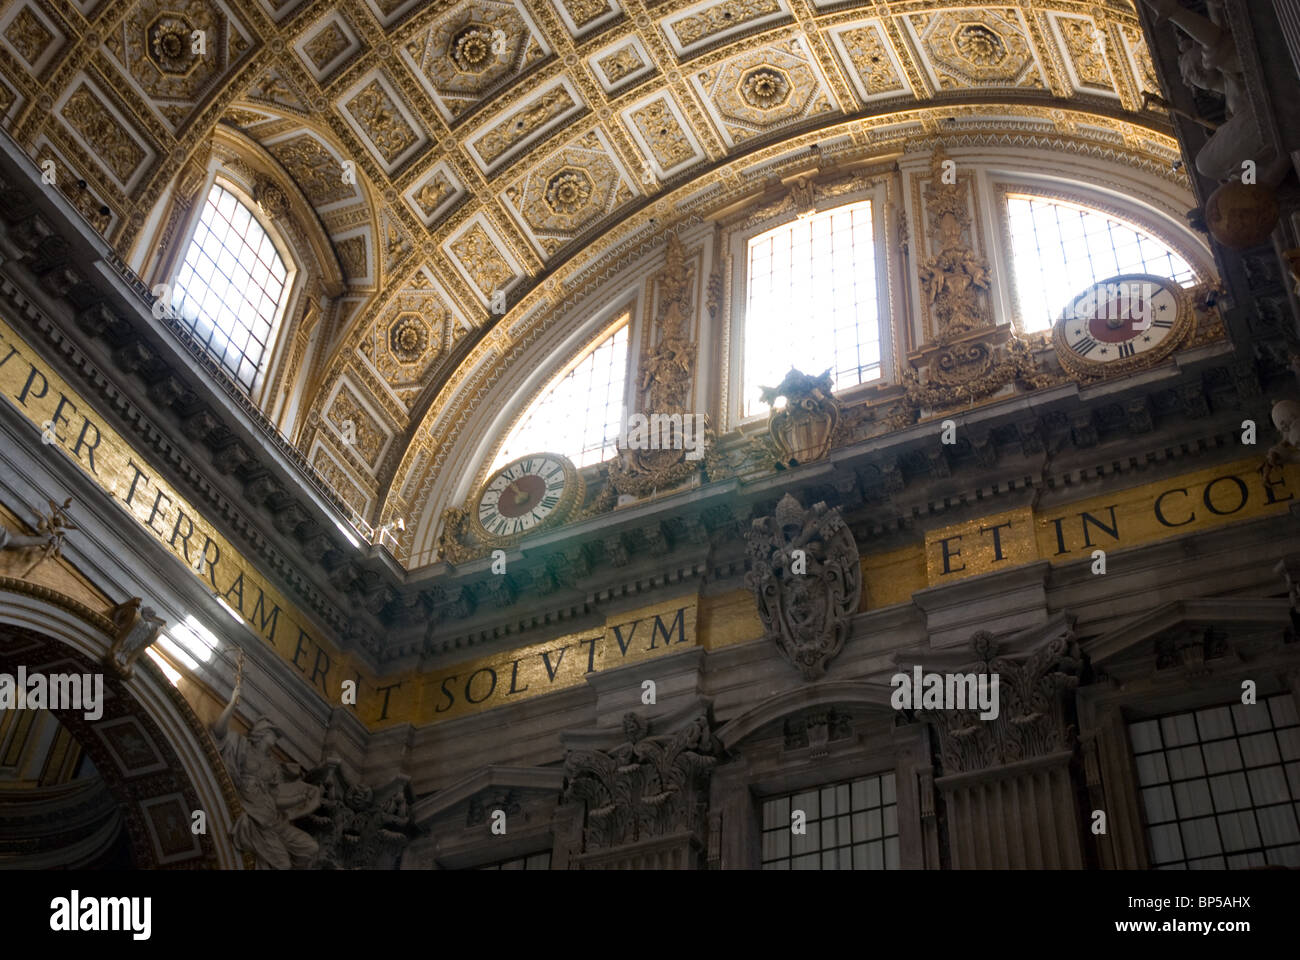 Interior of St. Peter's Basilica, Rome - Stock Image